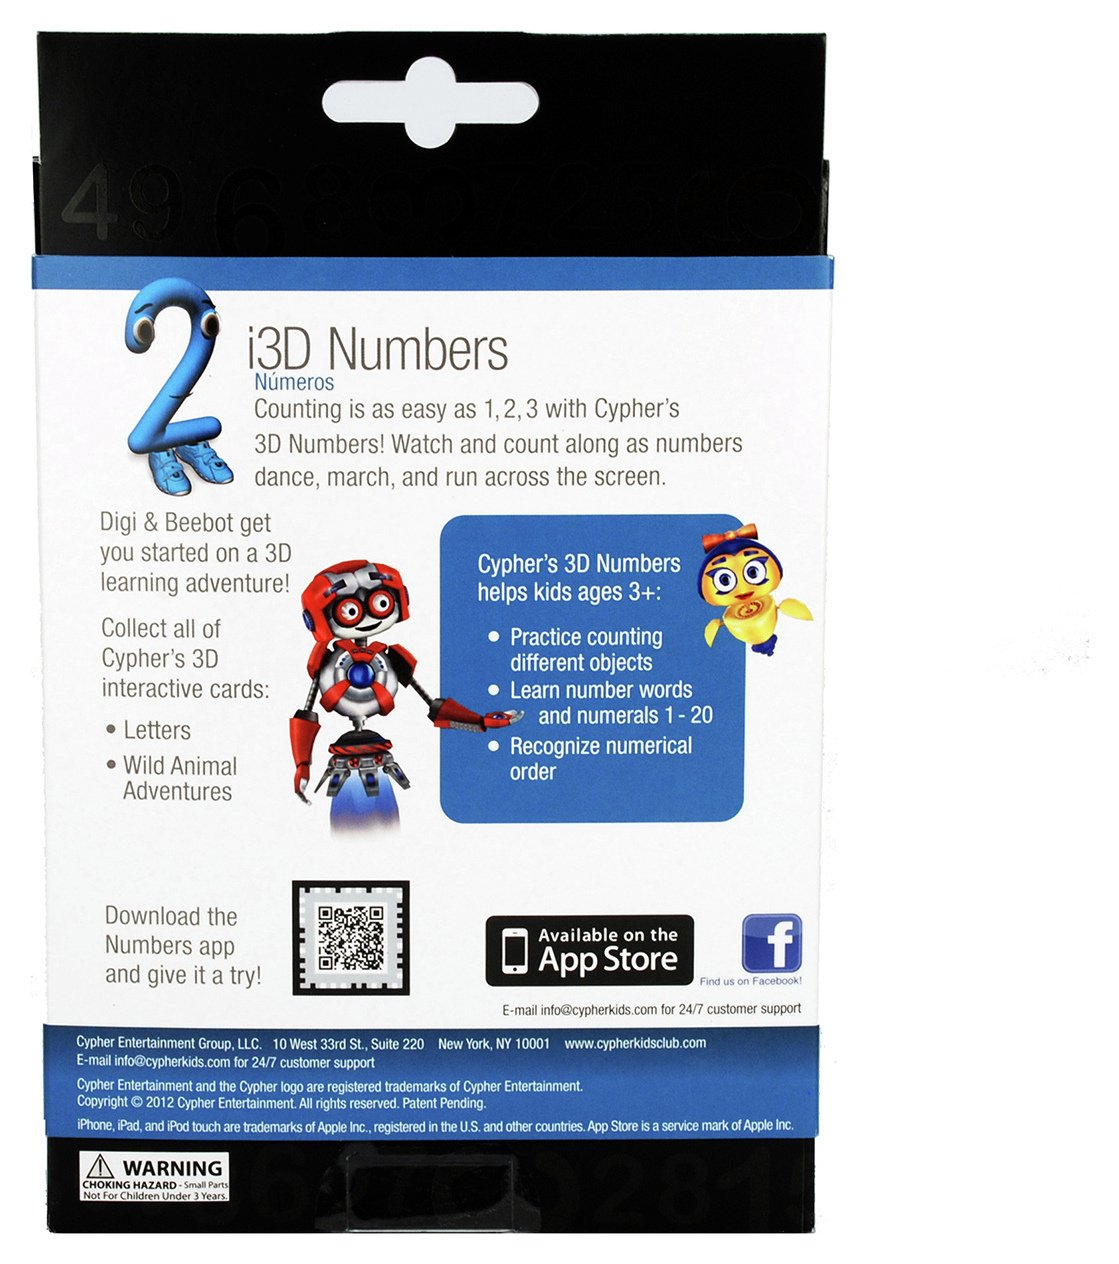 Image of Cypher i3D Interactive Number Cards - iPad, iPod & iPhone.